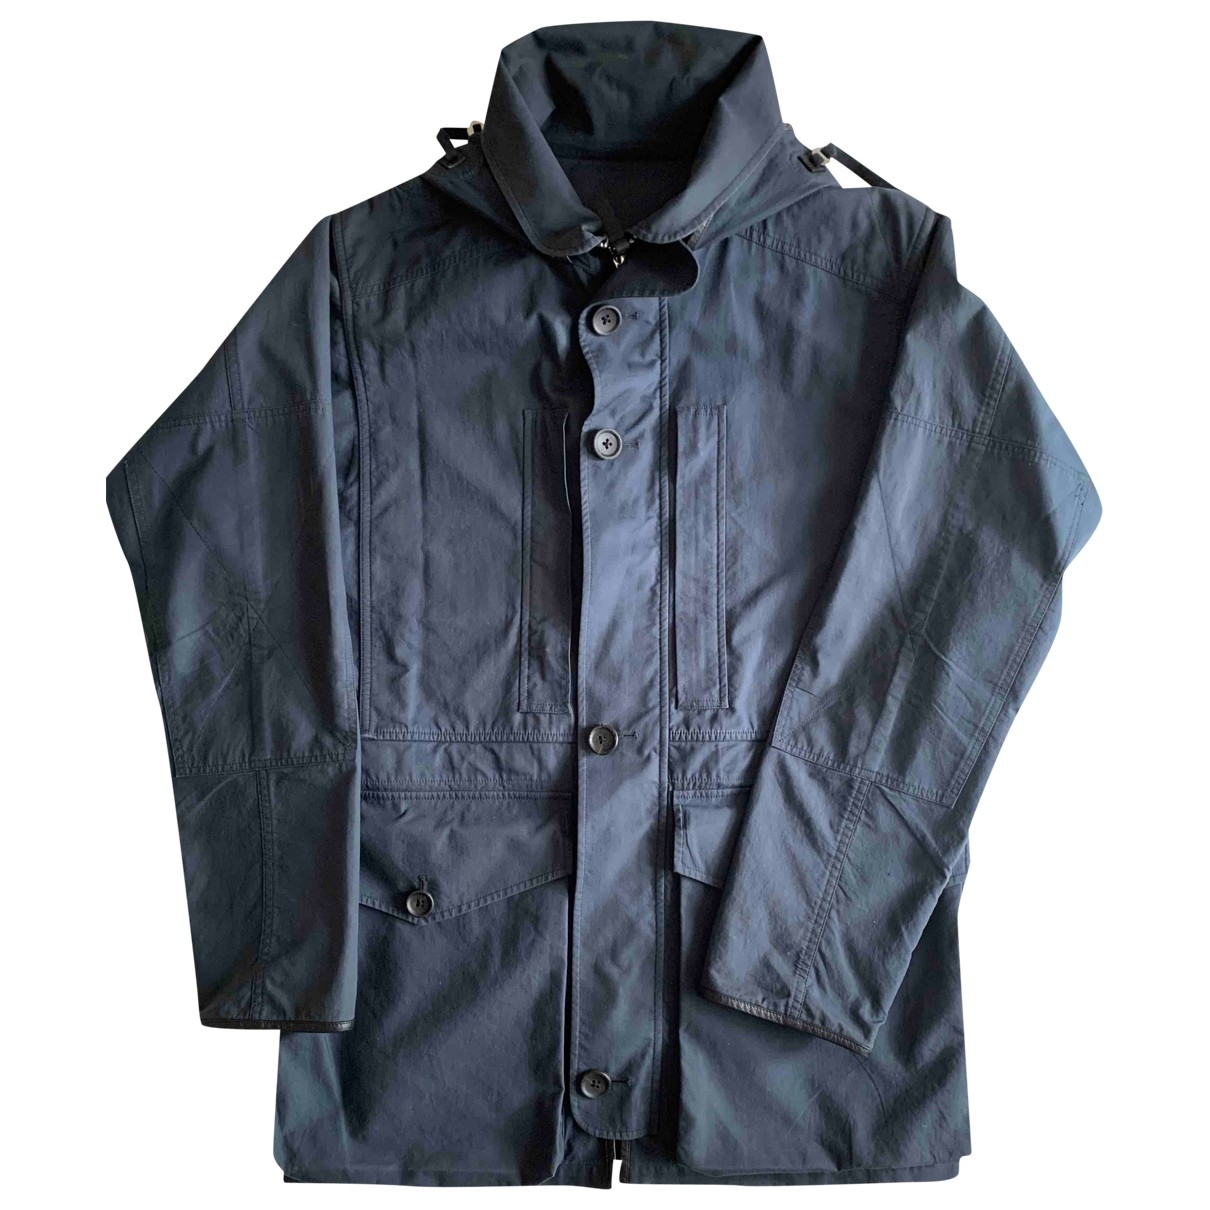 Louis Vuitton \N Blue jacket  for Men L International